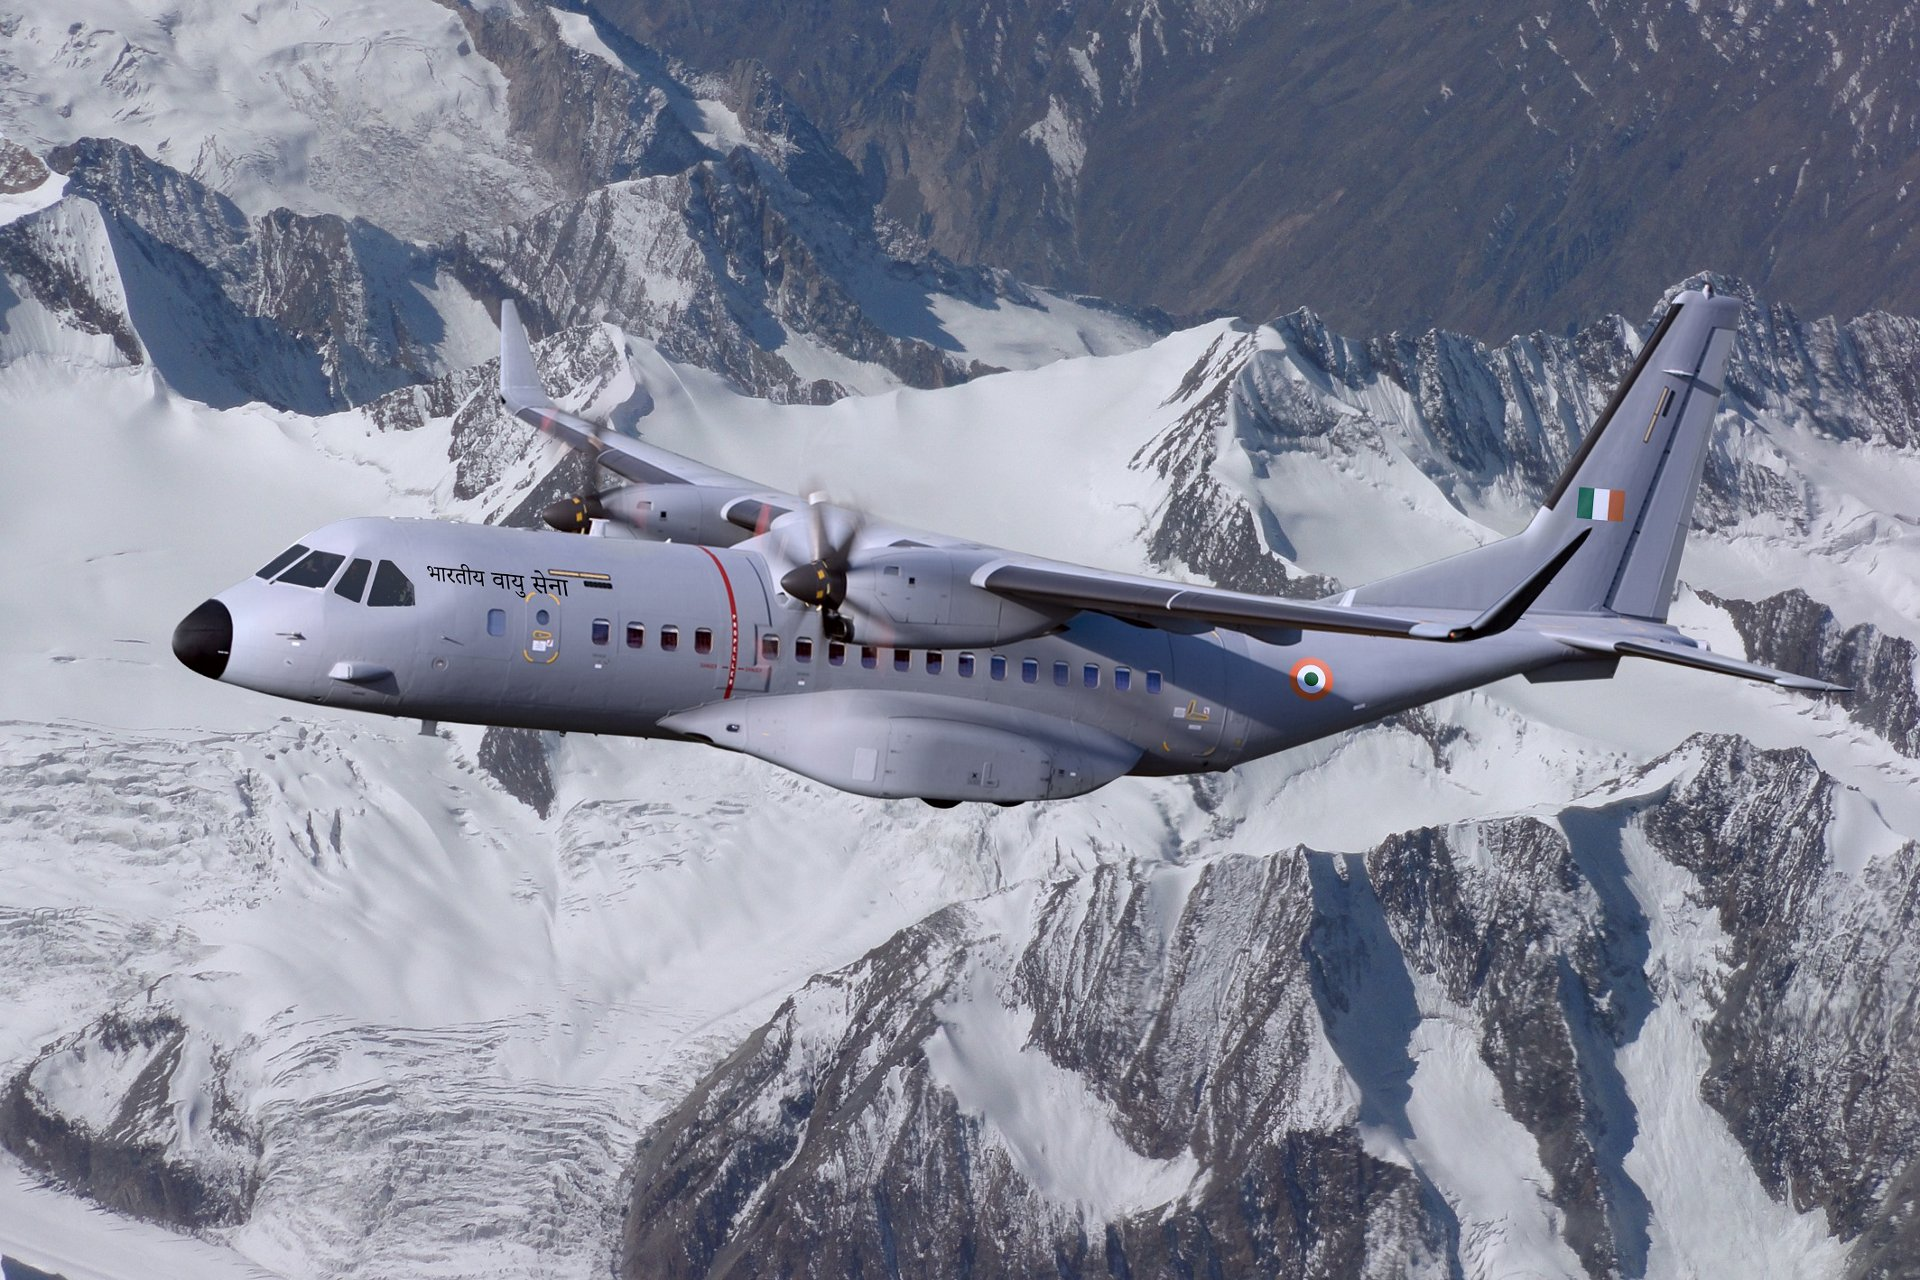 India has formalised the acquisition of 56 Airbus C295 aircraft to replace the Indian Air Force (IAF) legacy AVRO fleet.